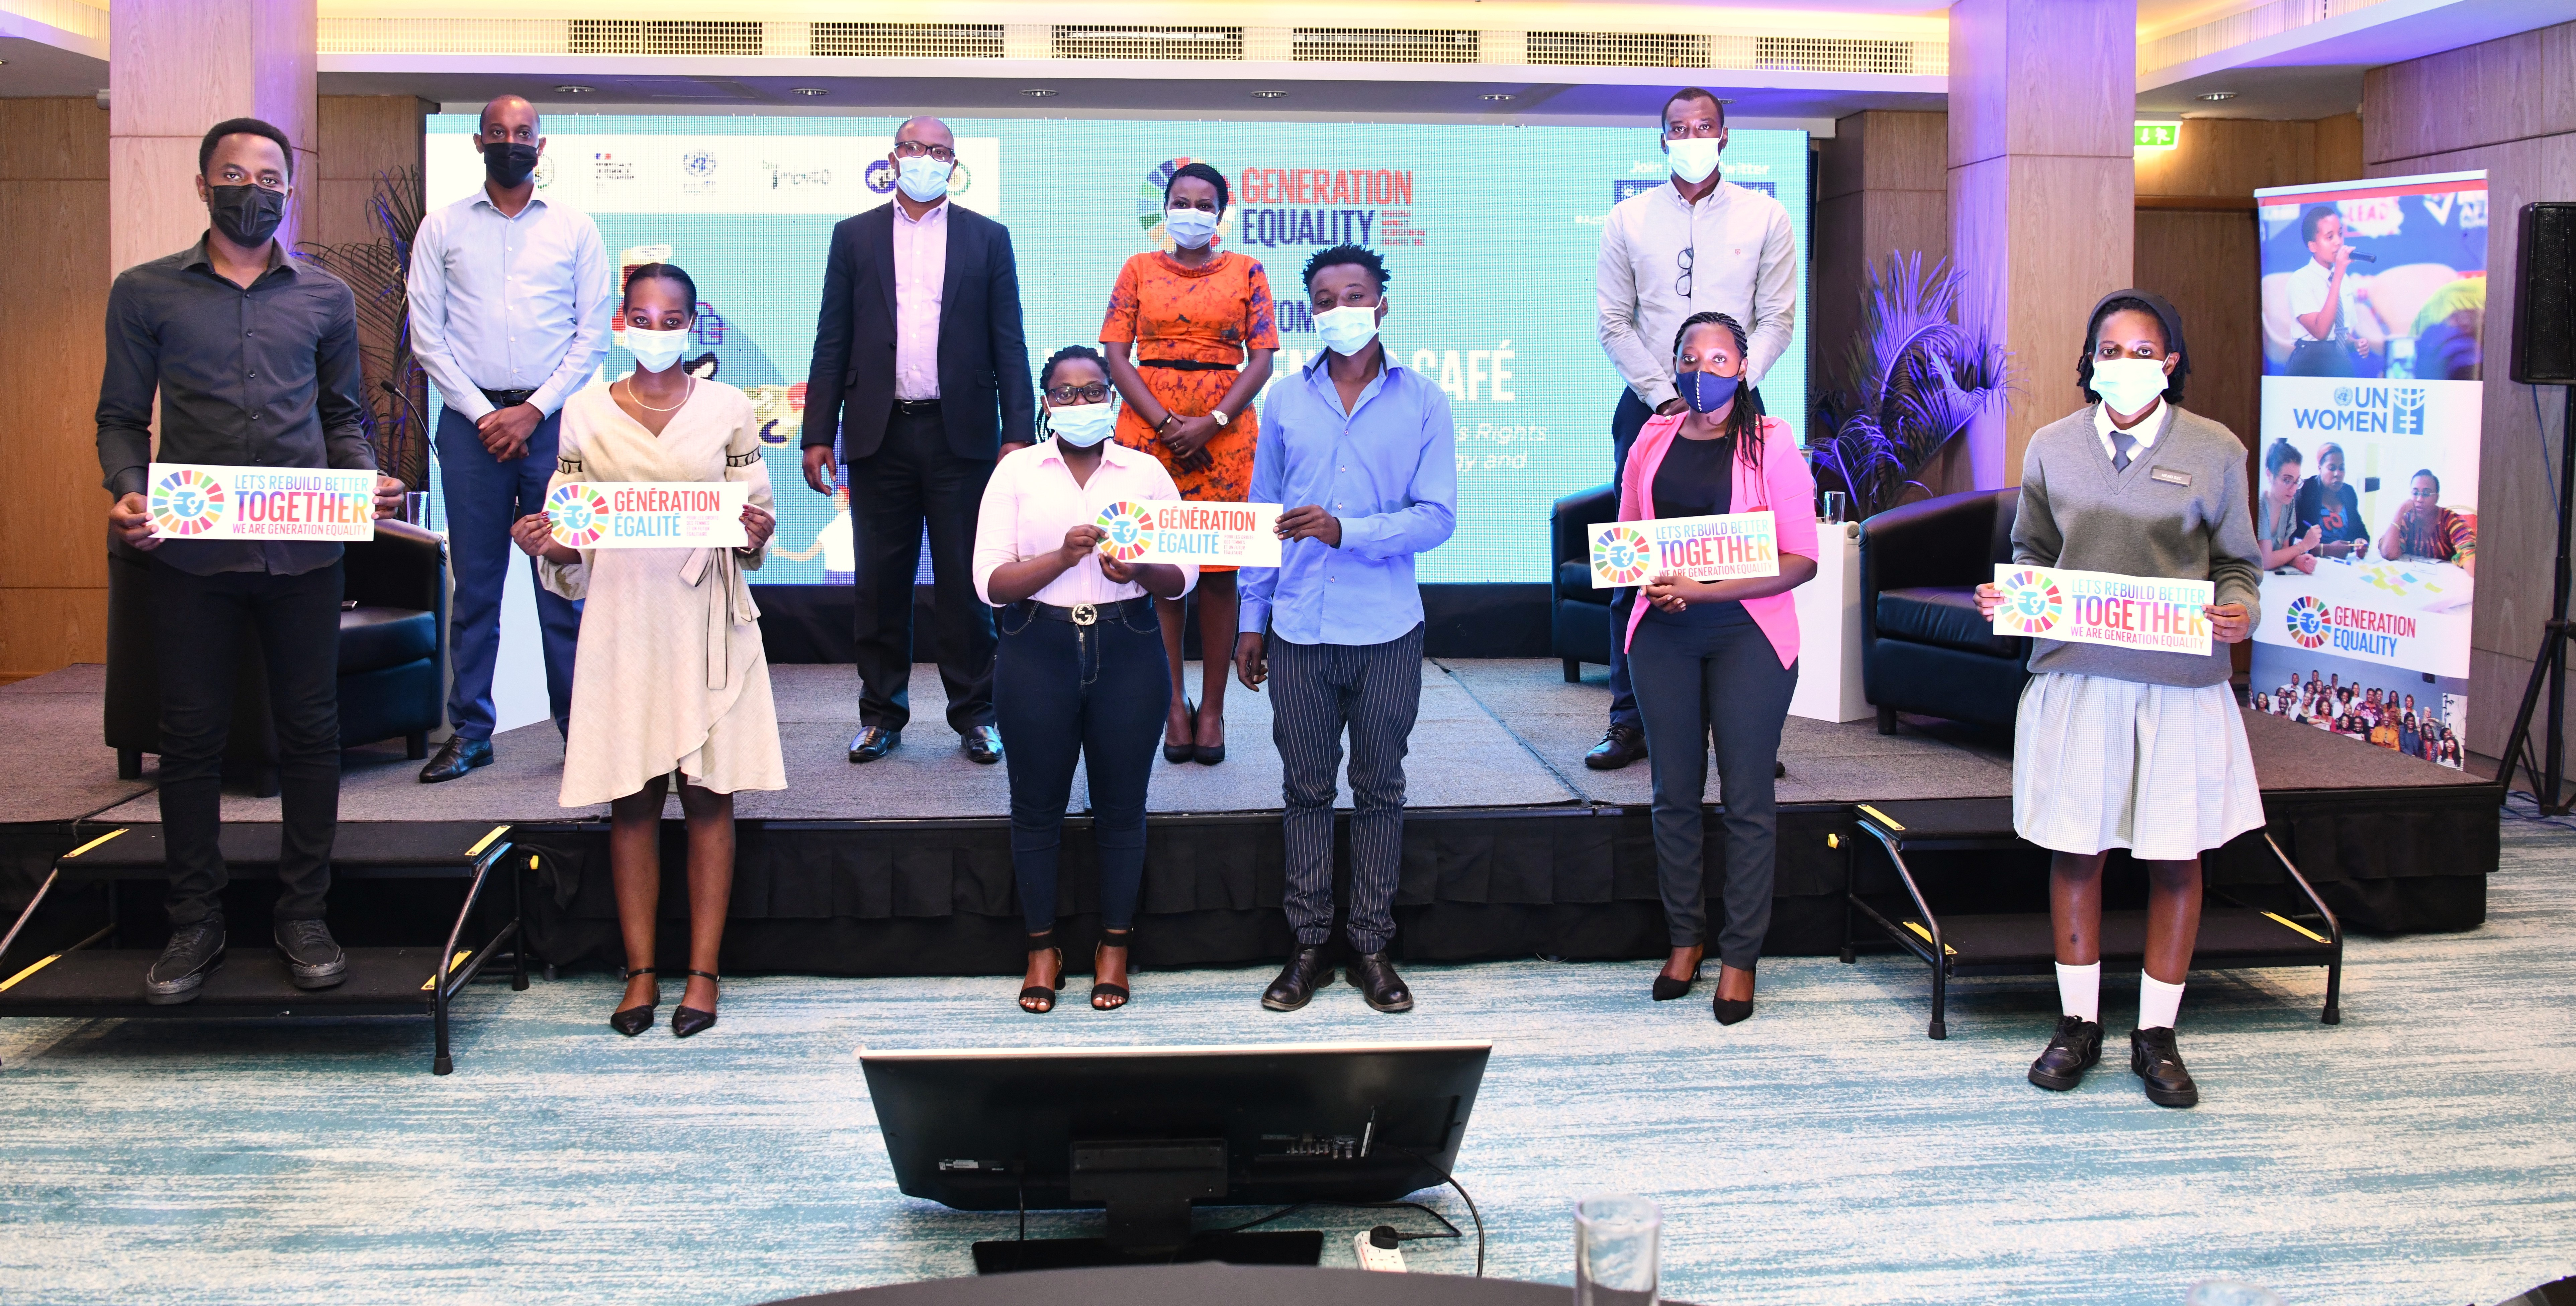 Technology and Innovation for Gender Equality: UN Women Rwanda unveils the Youth potential ahead of Generation Equality Forum in Paris